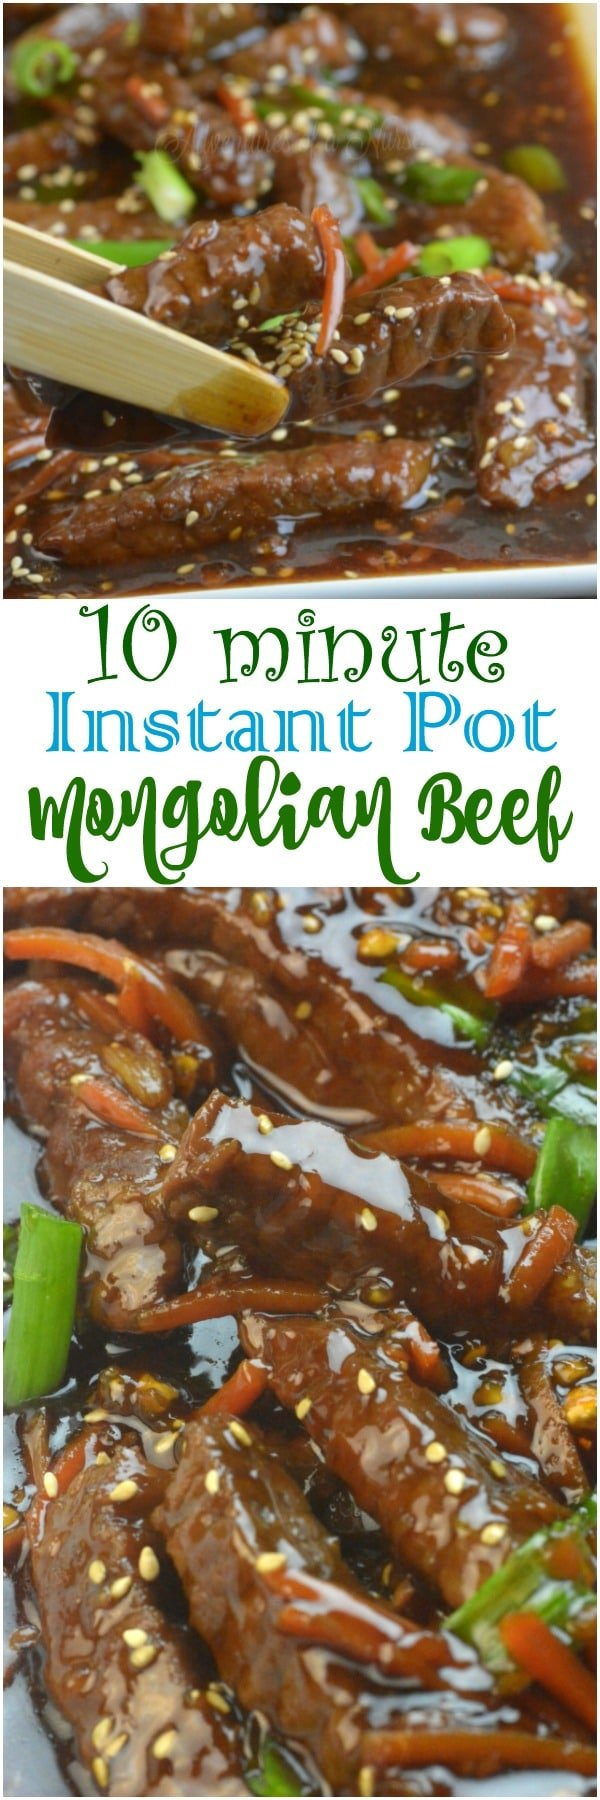 n just ten short minutes you can create this Instant Pot Mongolian Beef recipe that will blow your mind. A little sweet mixed with savory and that creamy sauce makes this Mongolian beef a must make dinner this week